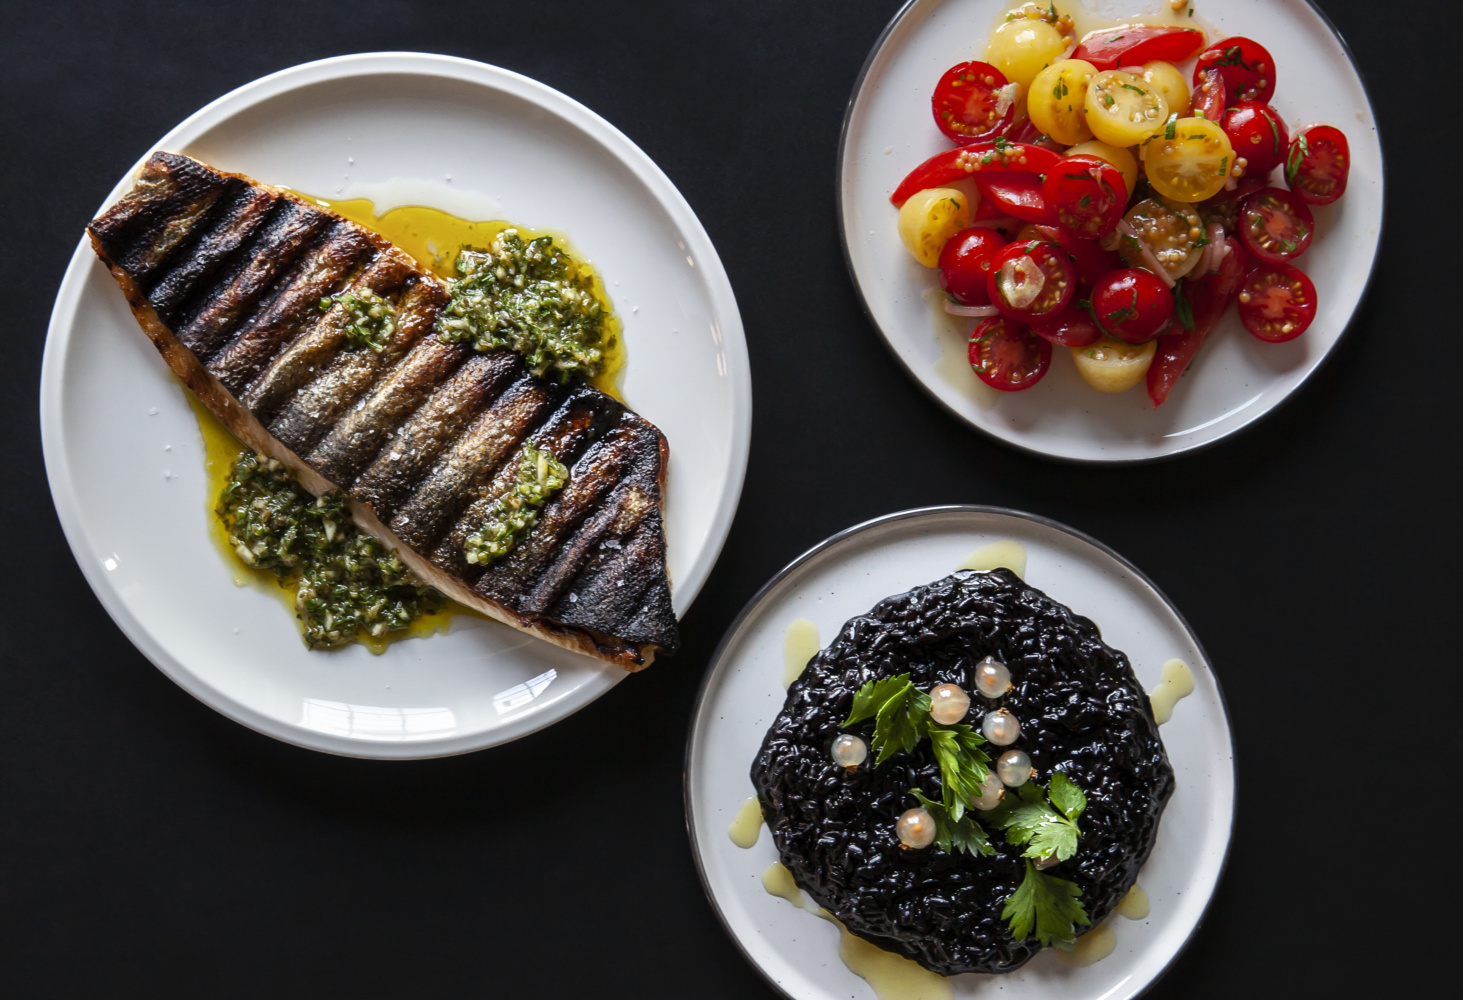 Wild caught trout, black venere rice and white currants tomato salad, from Olafur Eliasson's restaurant pop-up. Photo by Maria Del Pilar Garcia Ayensa/Studio Olafur Eliasson.